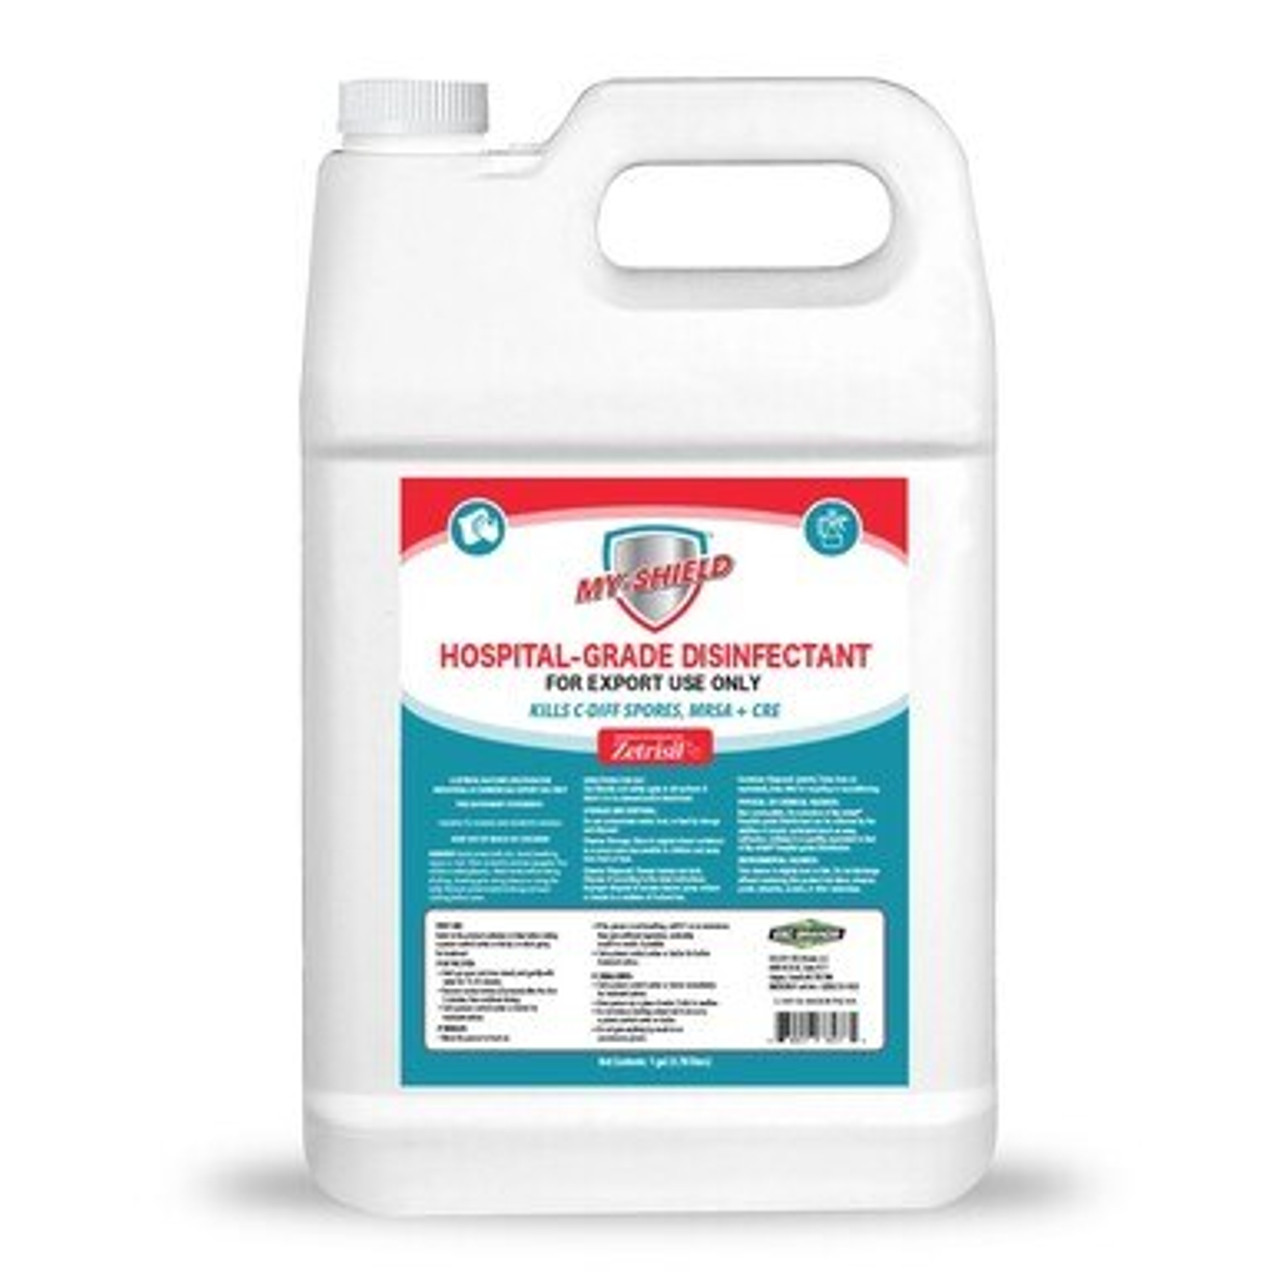 Hospital Grade Disinfectant - MyShield Case (4 x 1 Gallon Containers)